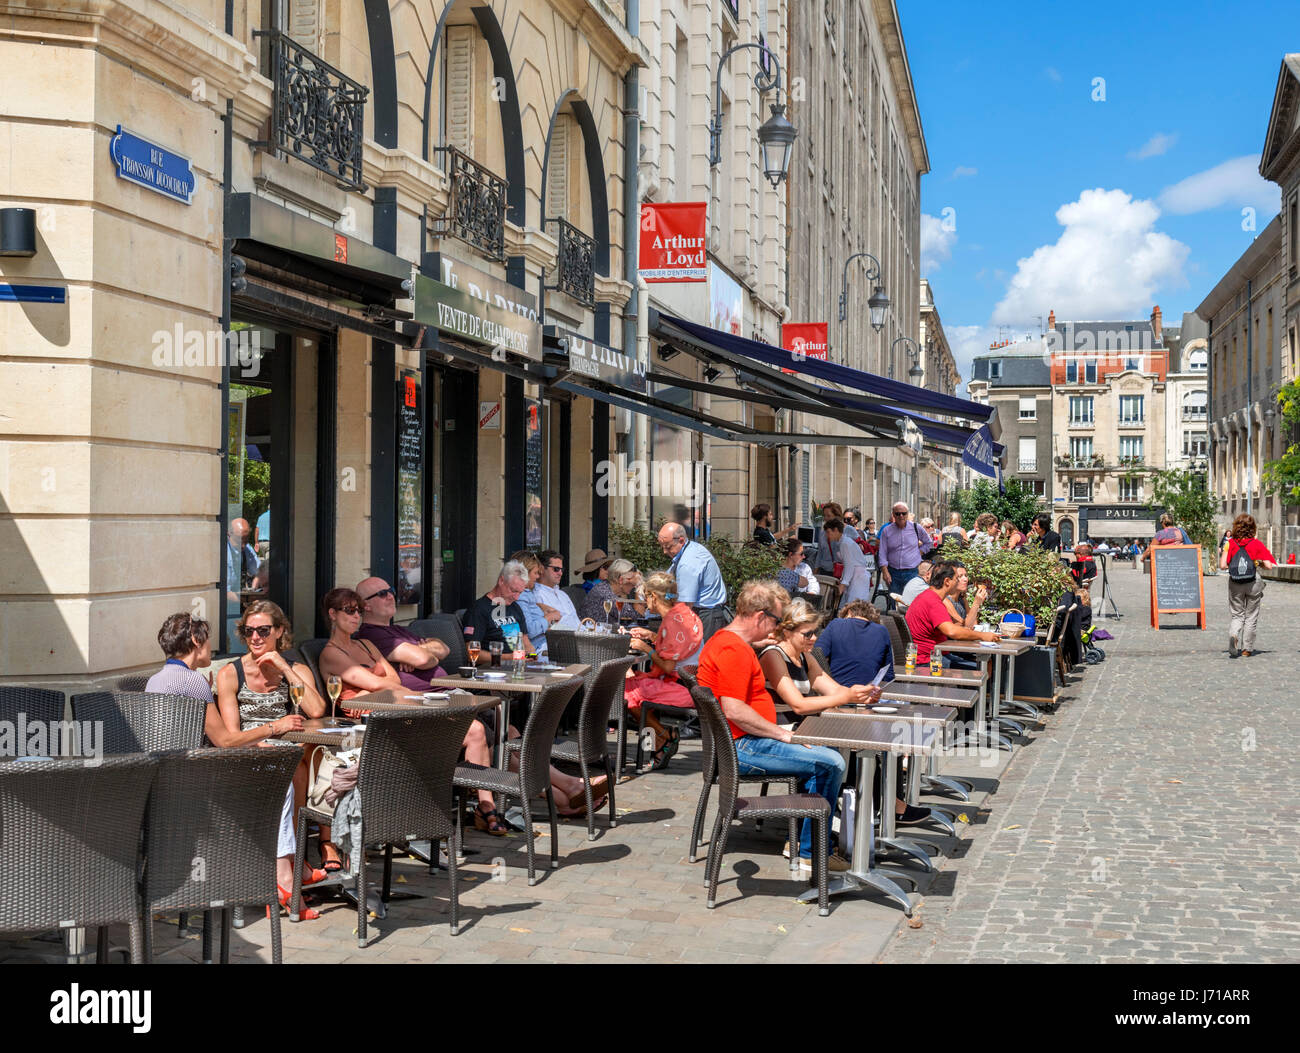 Cafes and shops near the cathedral, Rue Tronsson Ducoudray, Reims, France - Stock Image